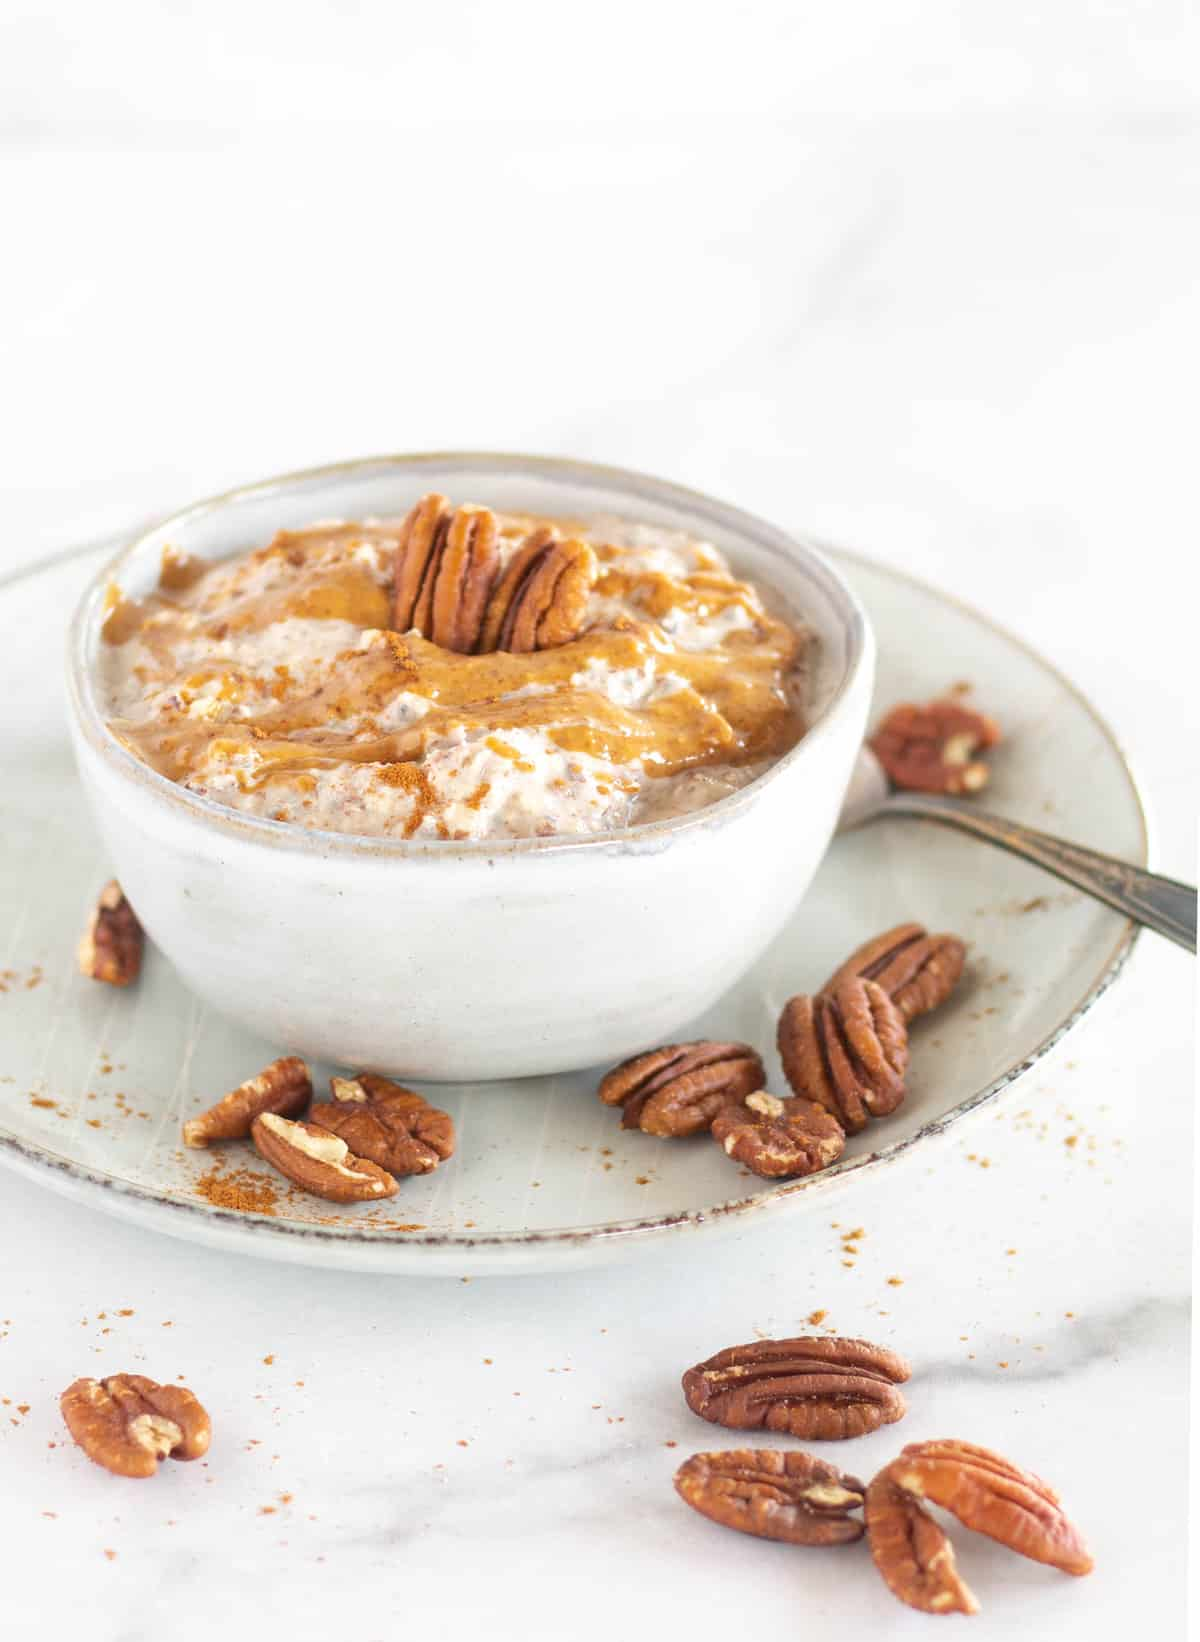 keto oatmeal in bowl with nut butter and pecans